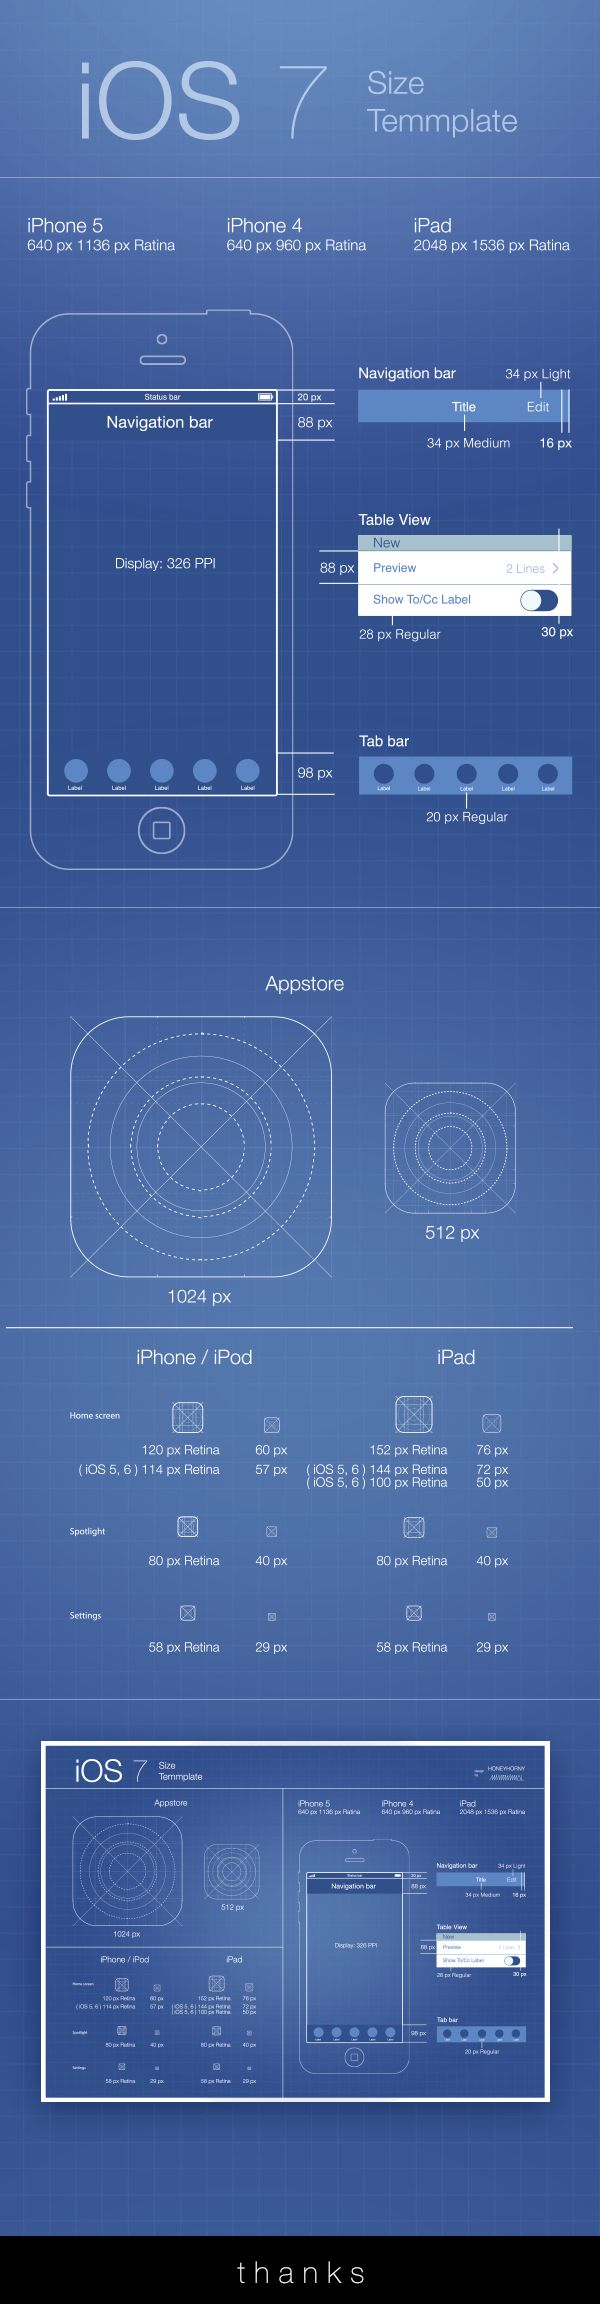 iOS 7 Template by Temmasuk Dechawanitcha, via Behance